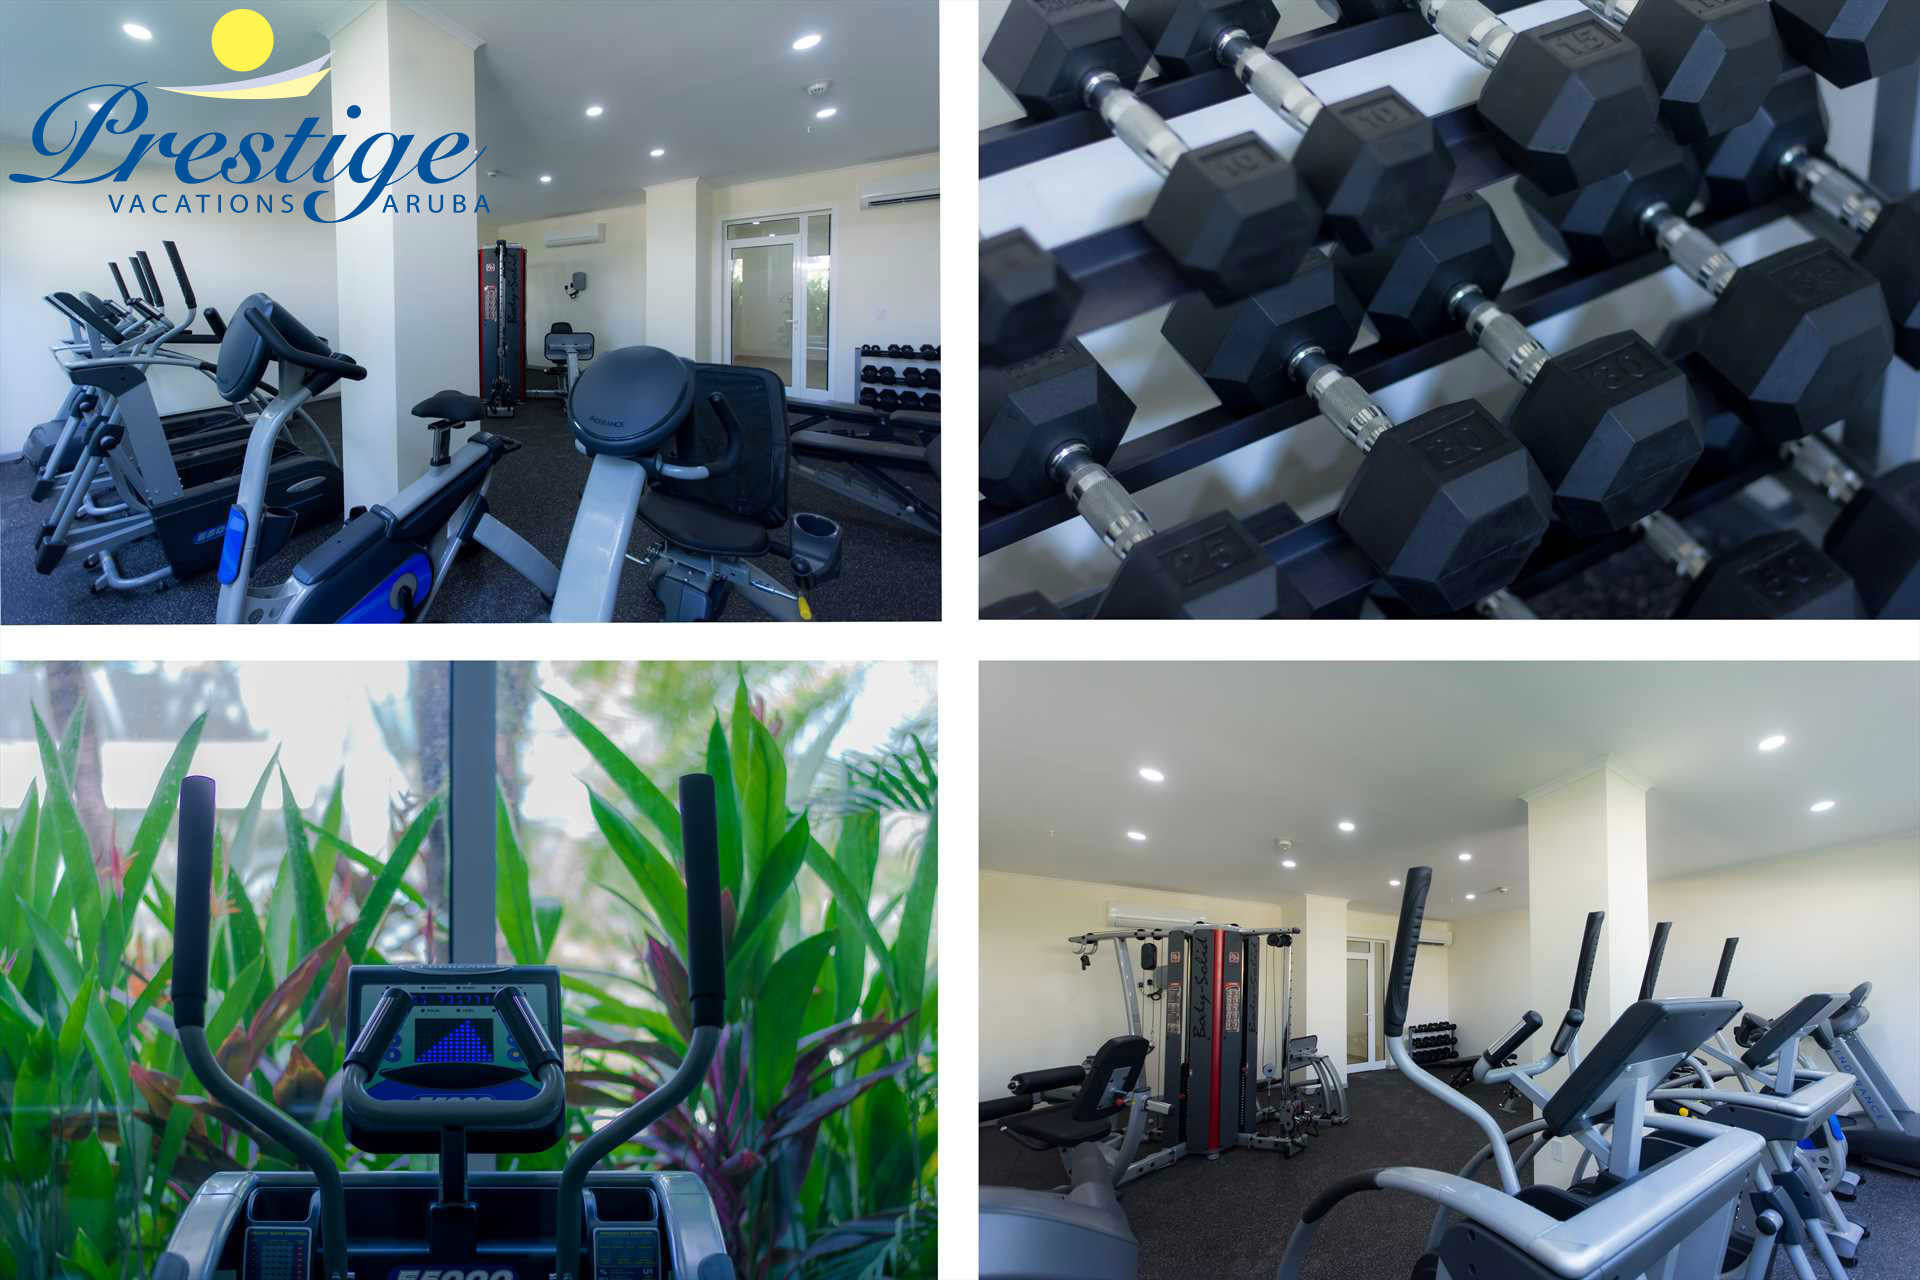 The gym room at the LeVent Beach Aruba Resort